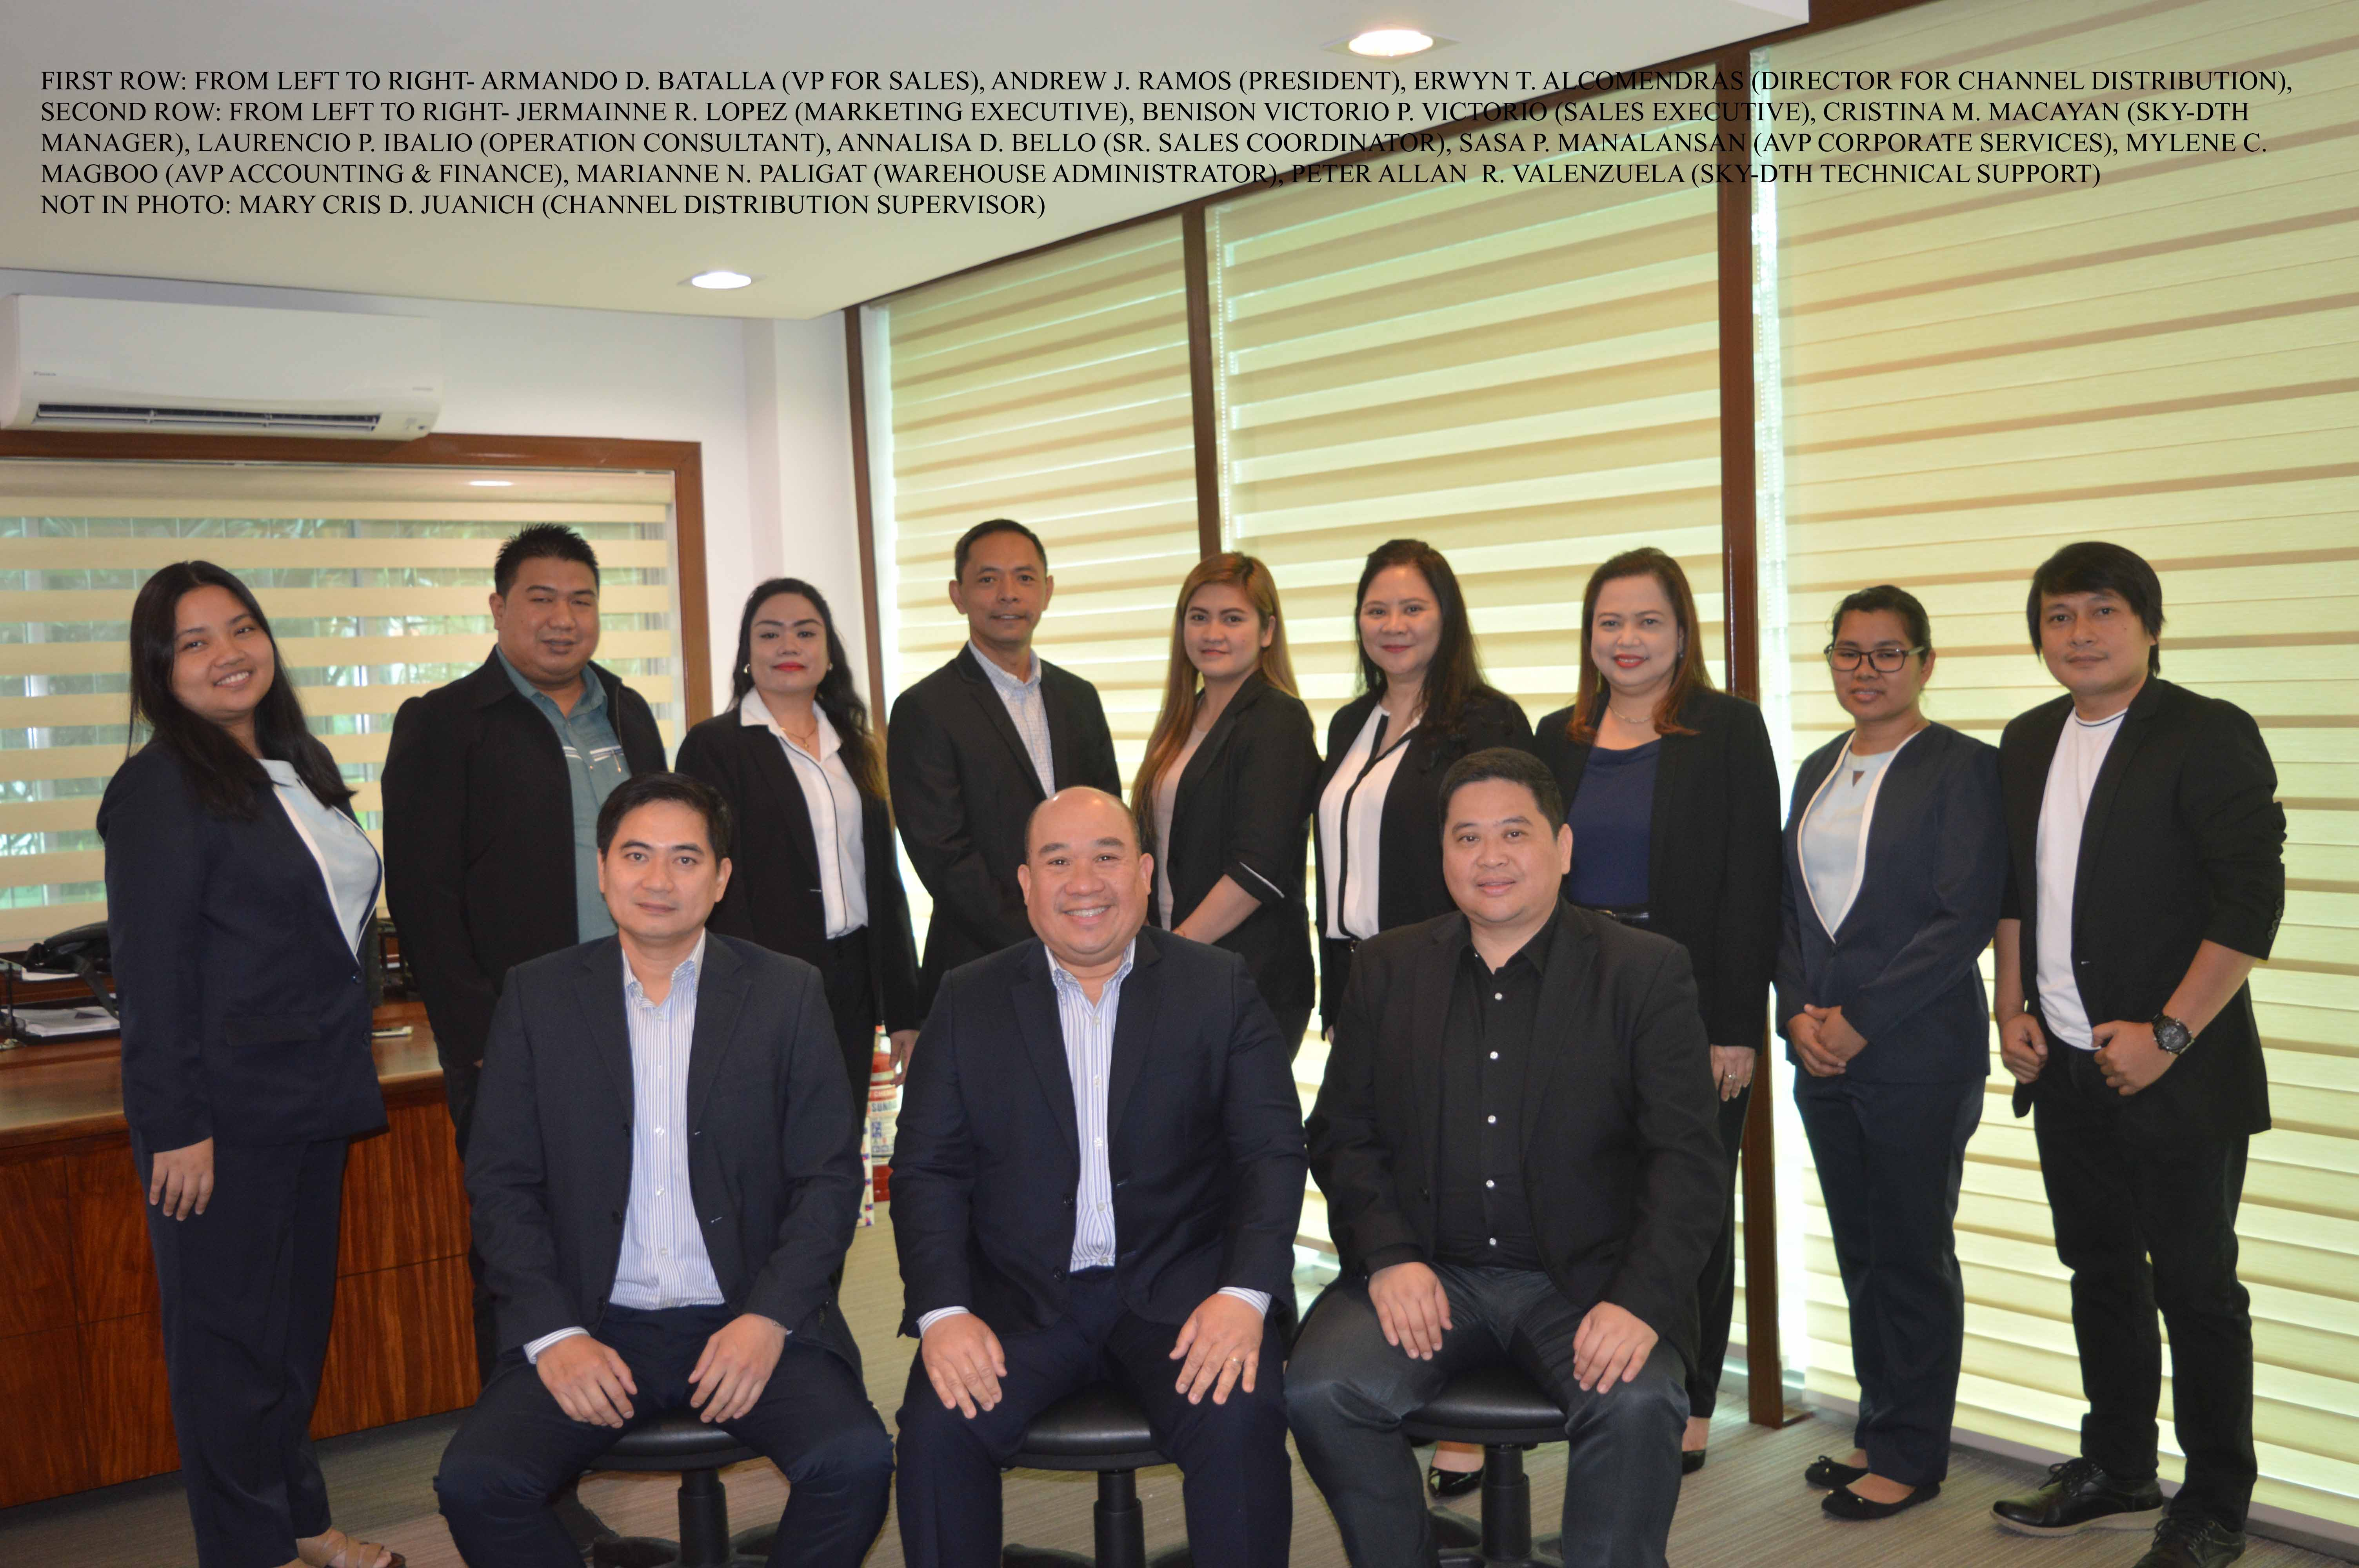 Seated, from left: Armando D. Batalla, VP for Sales; Andrew J. Ramos, president; and Erwyn T. Alcomendras, director for Channel Distribution. Standing, from left: Jermainne R. Lopez, marketing executive; Benison Victorio P. Victorio, sales executive; Cristina M. Macayan, SKY DTH manager; Laurencio P. Iballo, operation consultant; Annalisa D. Bello, senior sales coordinator; Sasa P. Manalansan, AVP for Corporate Services; Mylene C. Magboo, AVP for Accounting and Finance; Marianne N. Paligat, warehouse administrator; and Peter Allan R. Valenzuela, SKY DTH technical support. Not in photo: Mary Cris D. Juanich, Channel Distribution supervisor